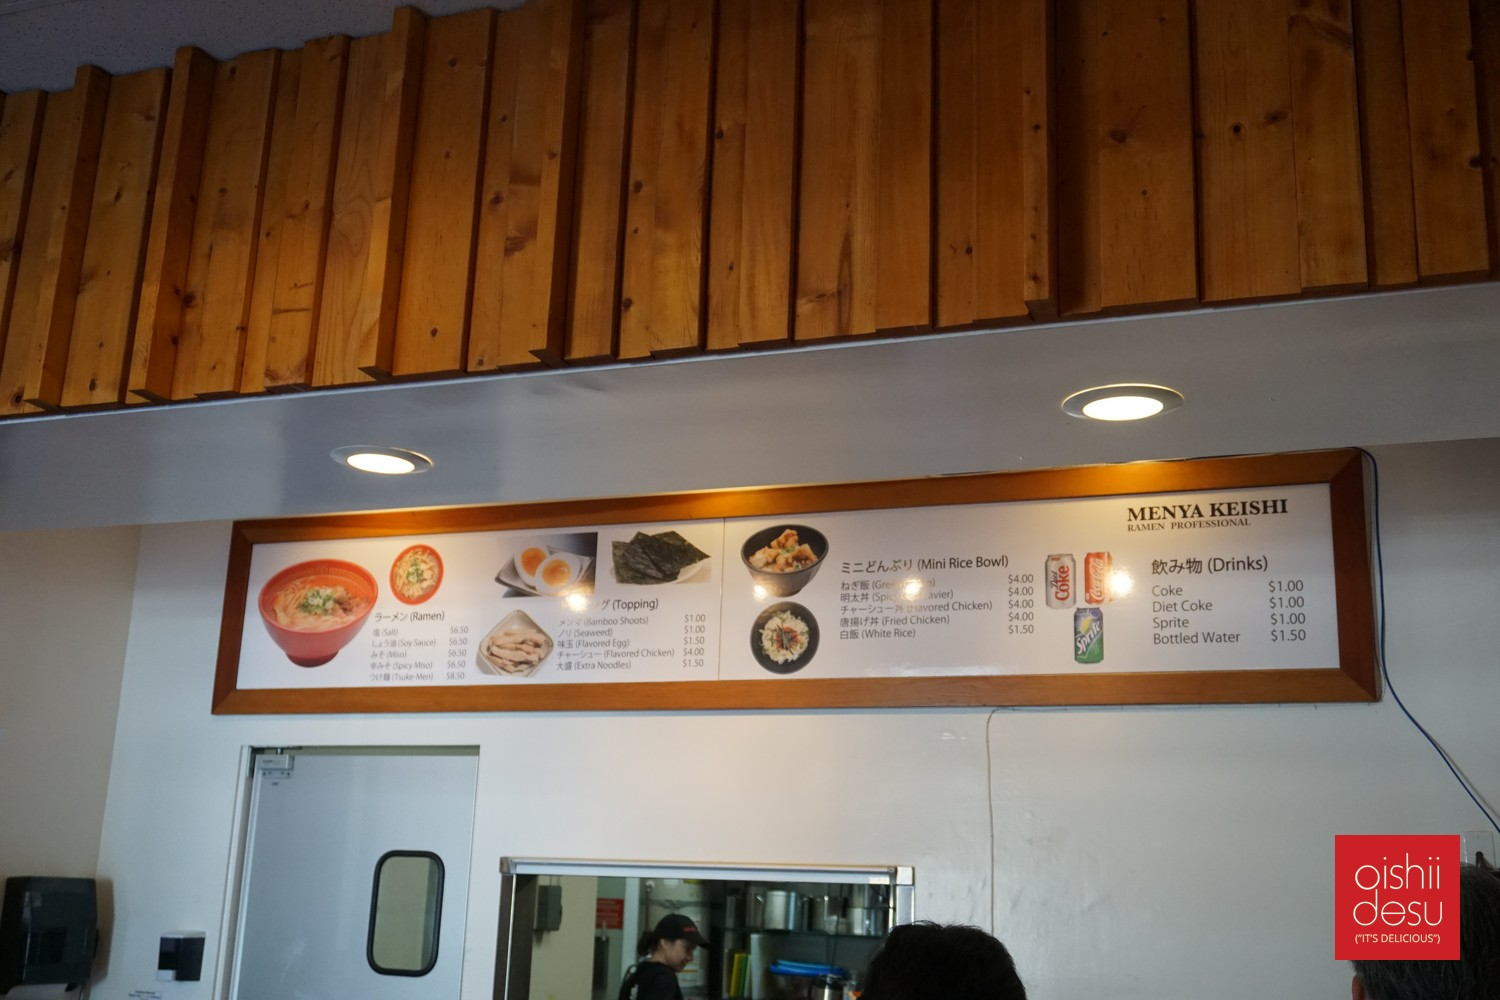 I don't think they had intended on having your order at the door otherwise they would have put the menu up closer.